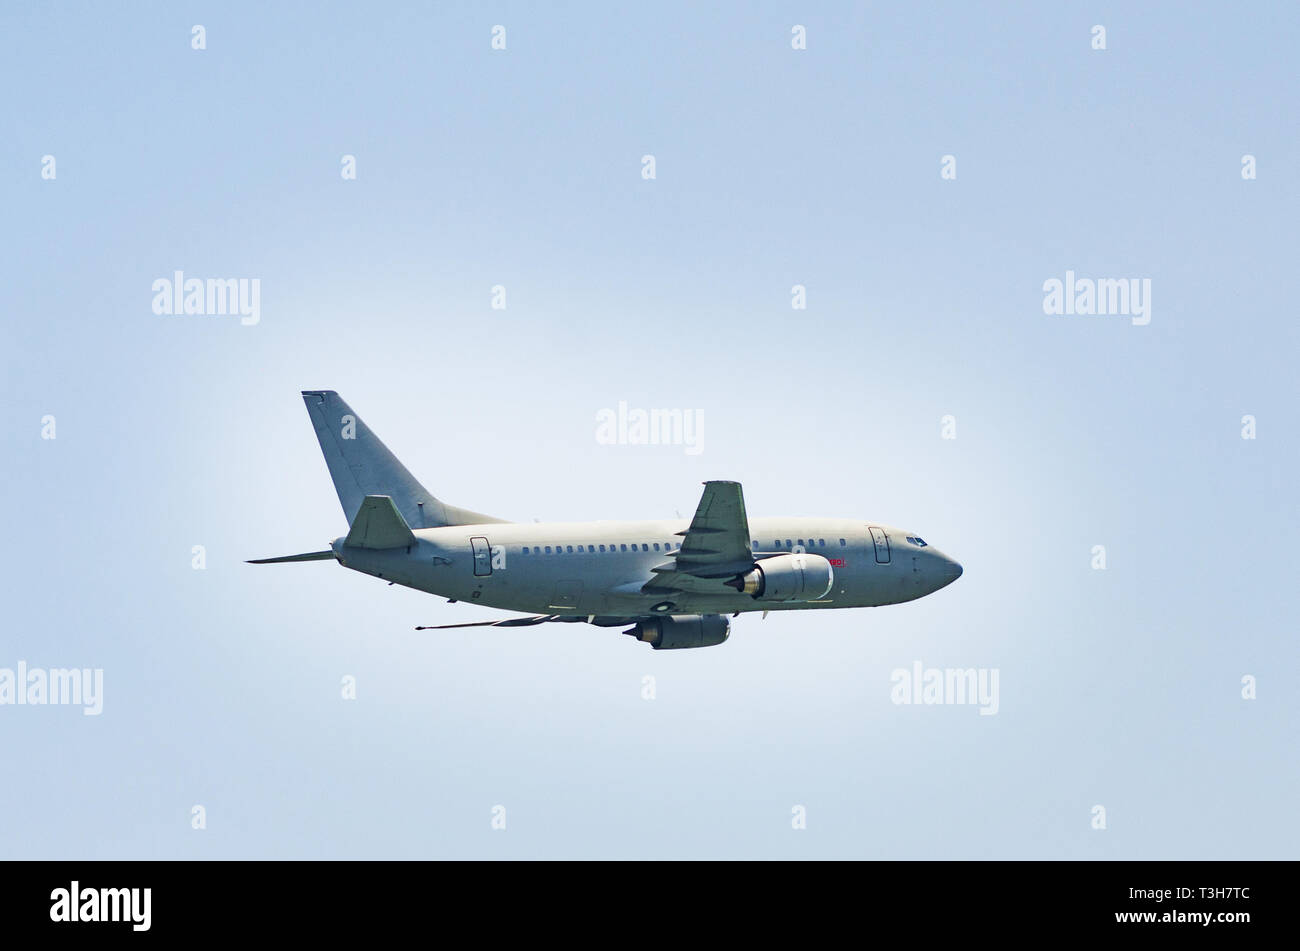 Military plane plowing the skies of Lima - Peru. Stock Photo